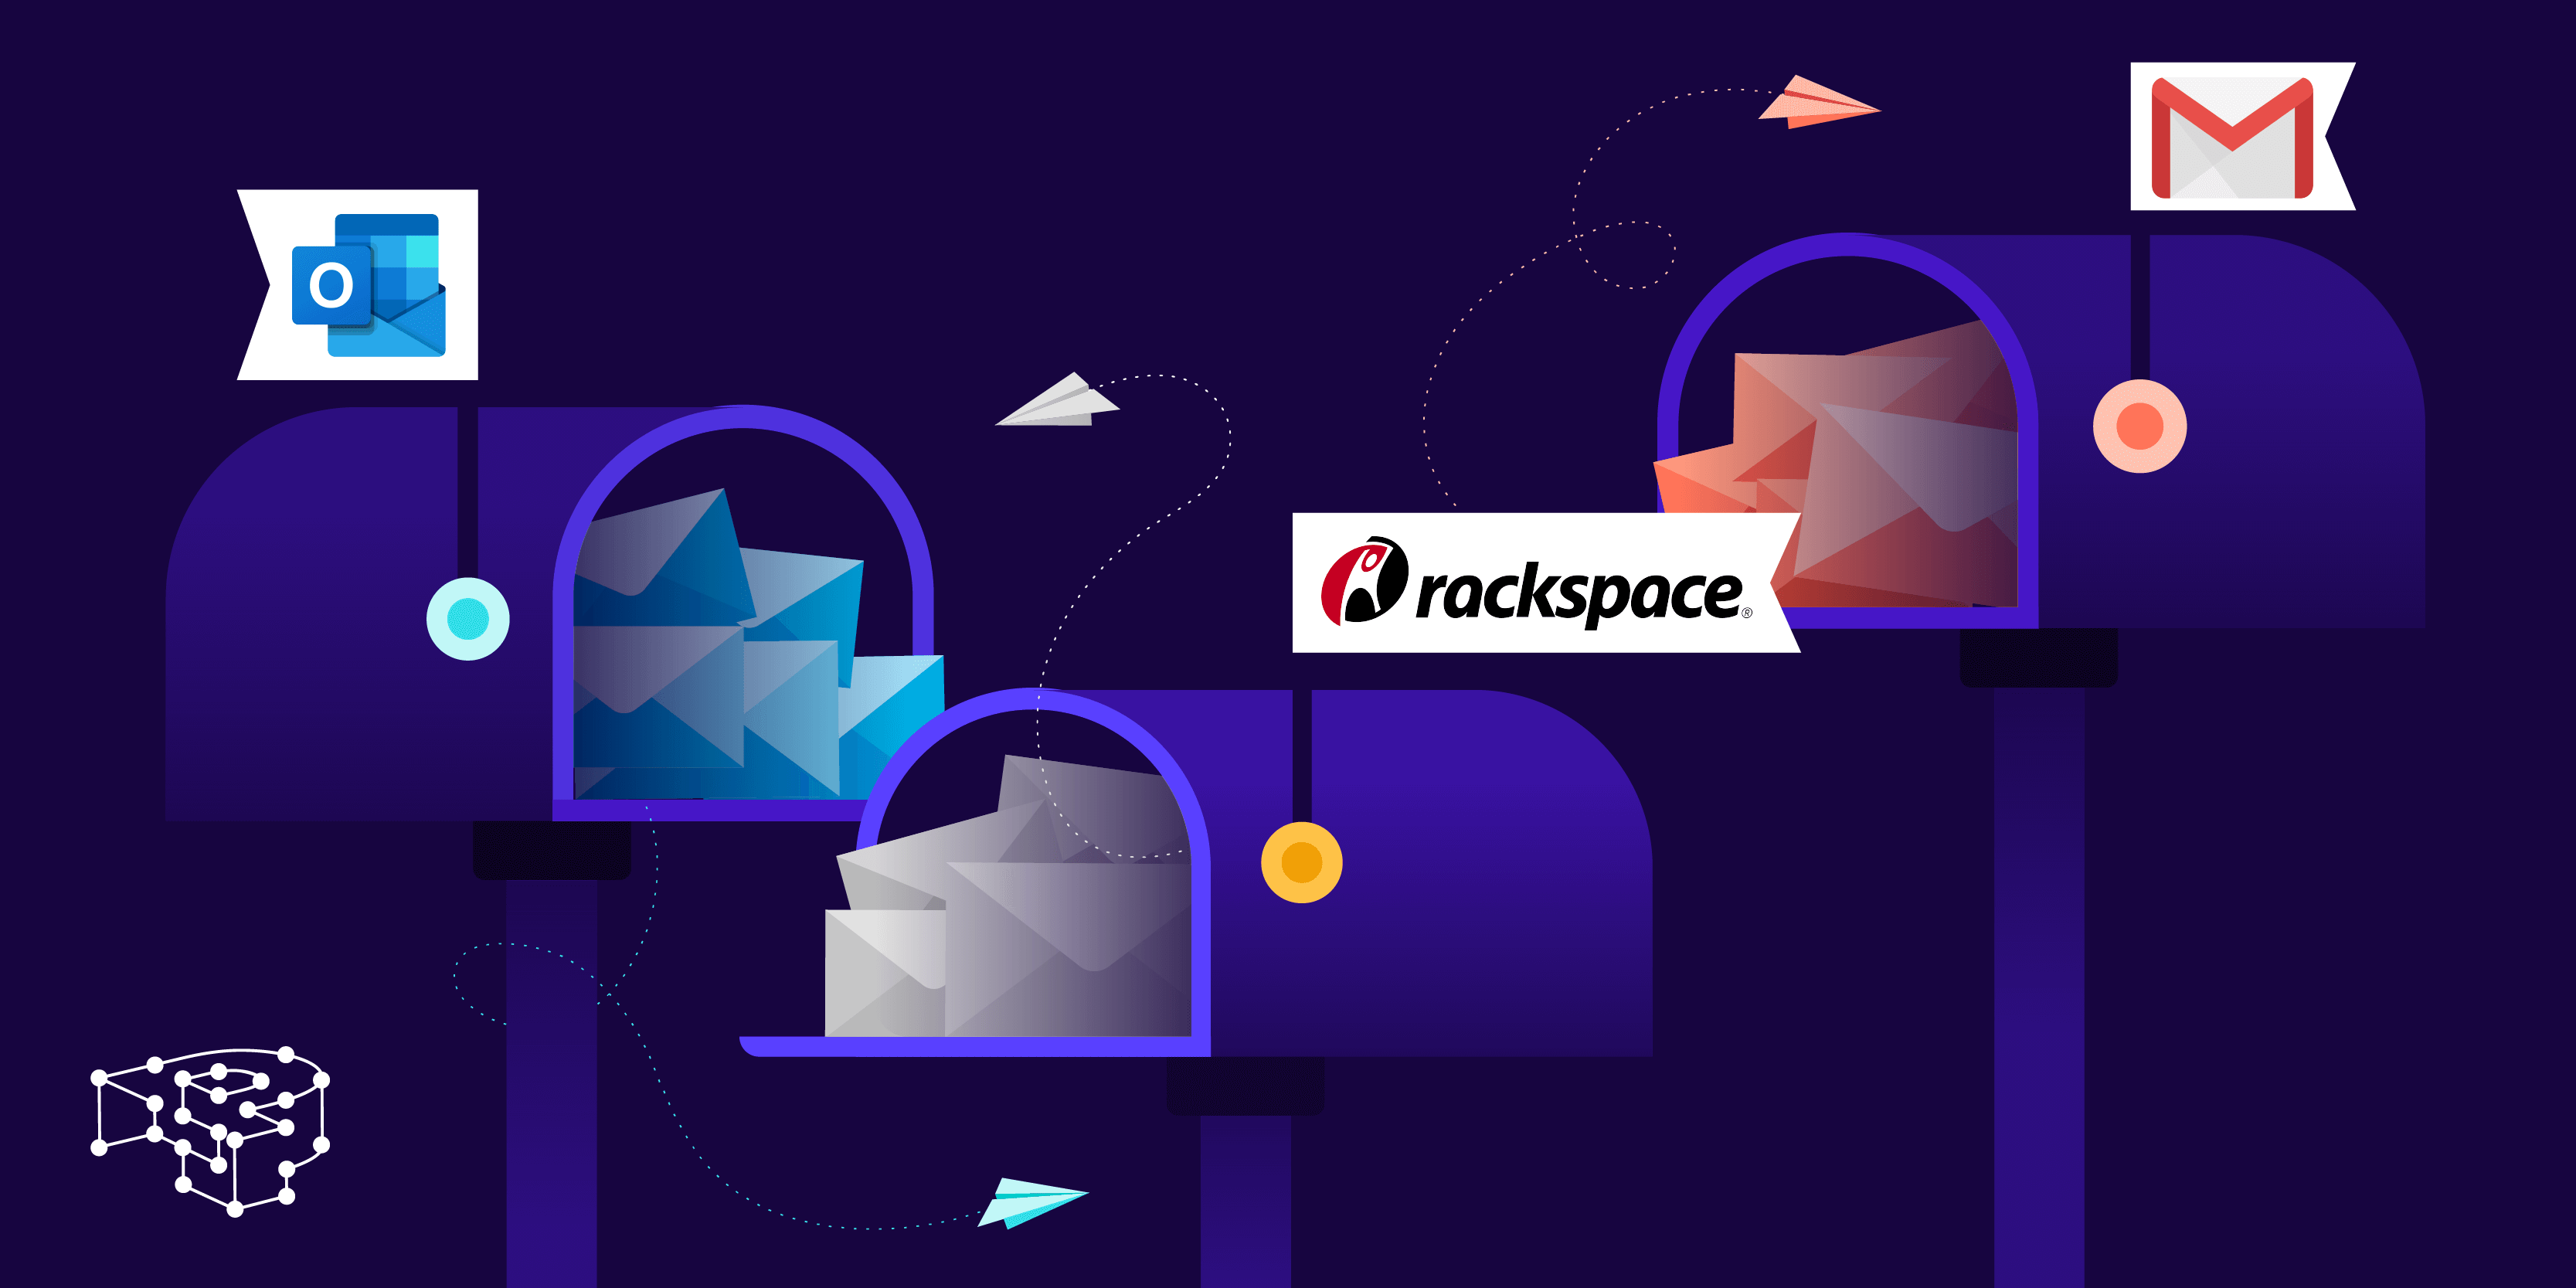 Image for Google vs Rackspace vs Microsoft – Which Email Provider is Best? 2020 Review.